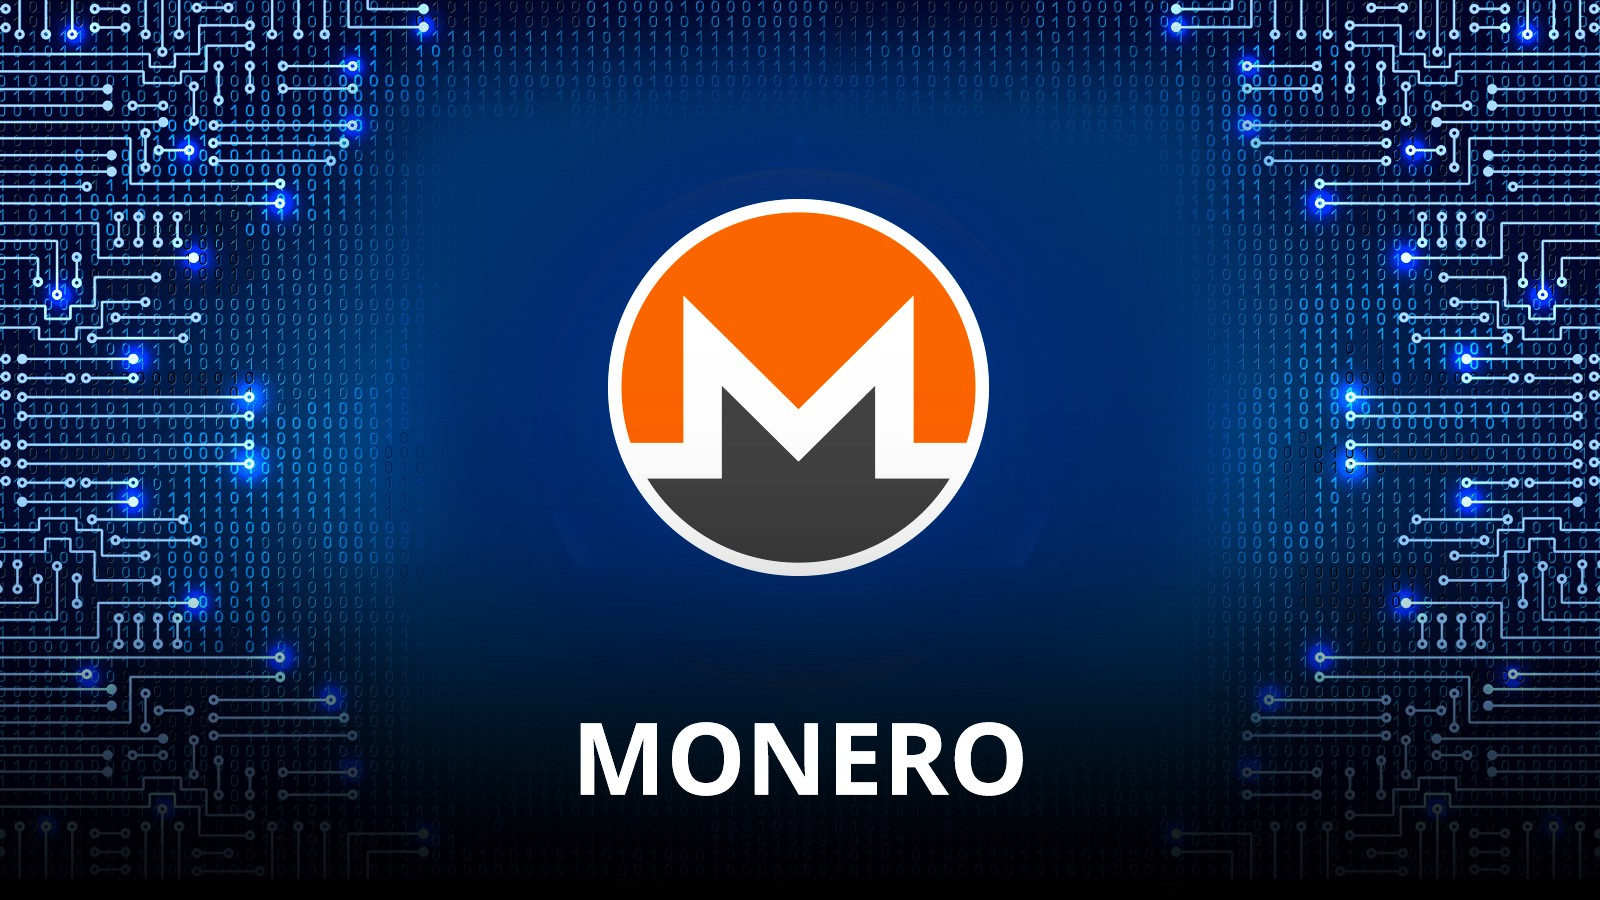 Warning: Monero Verification Tools May Be Compromised